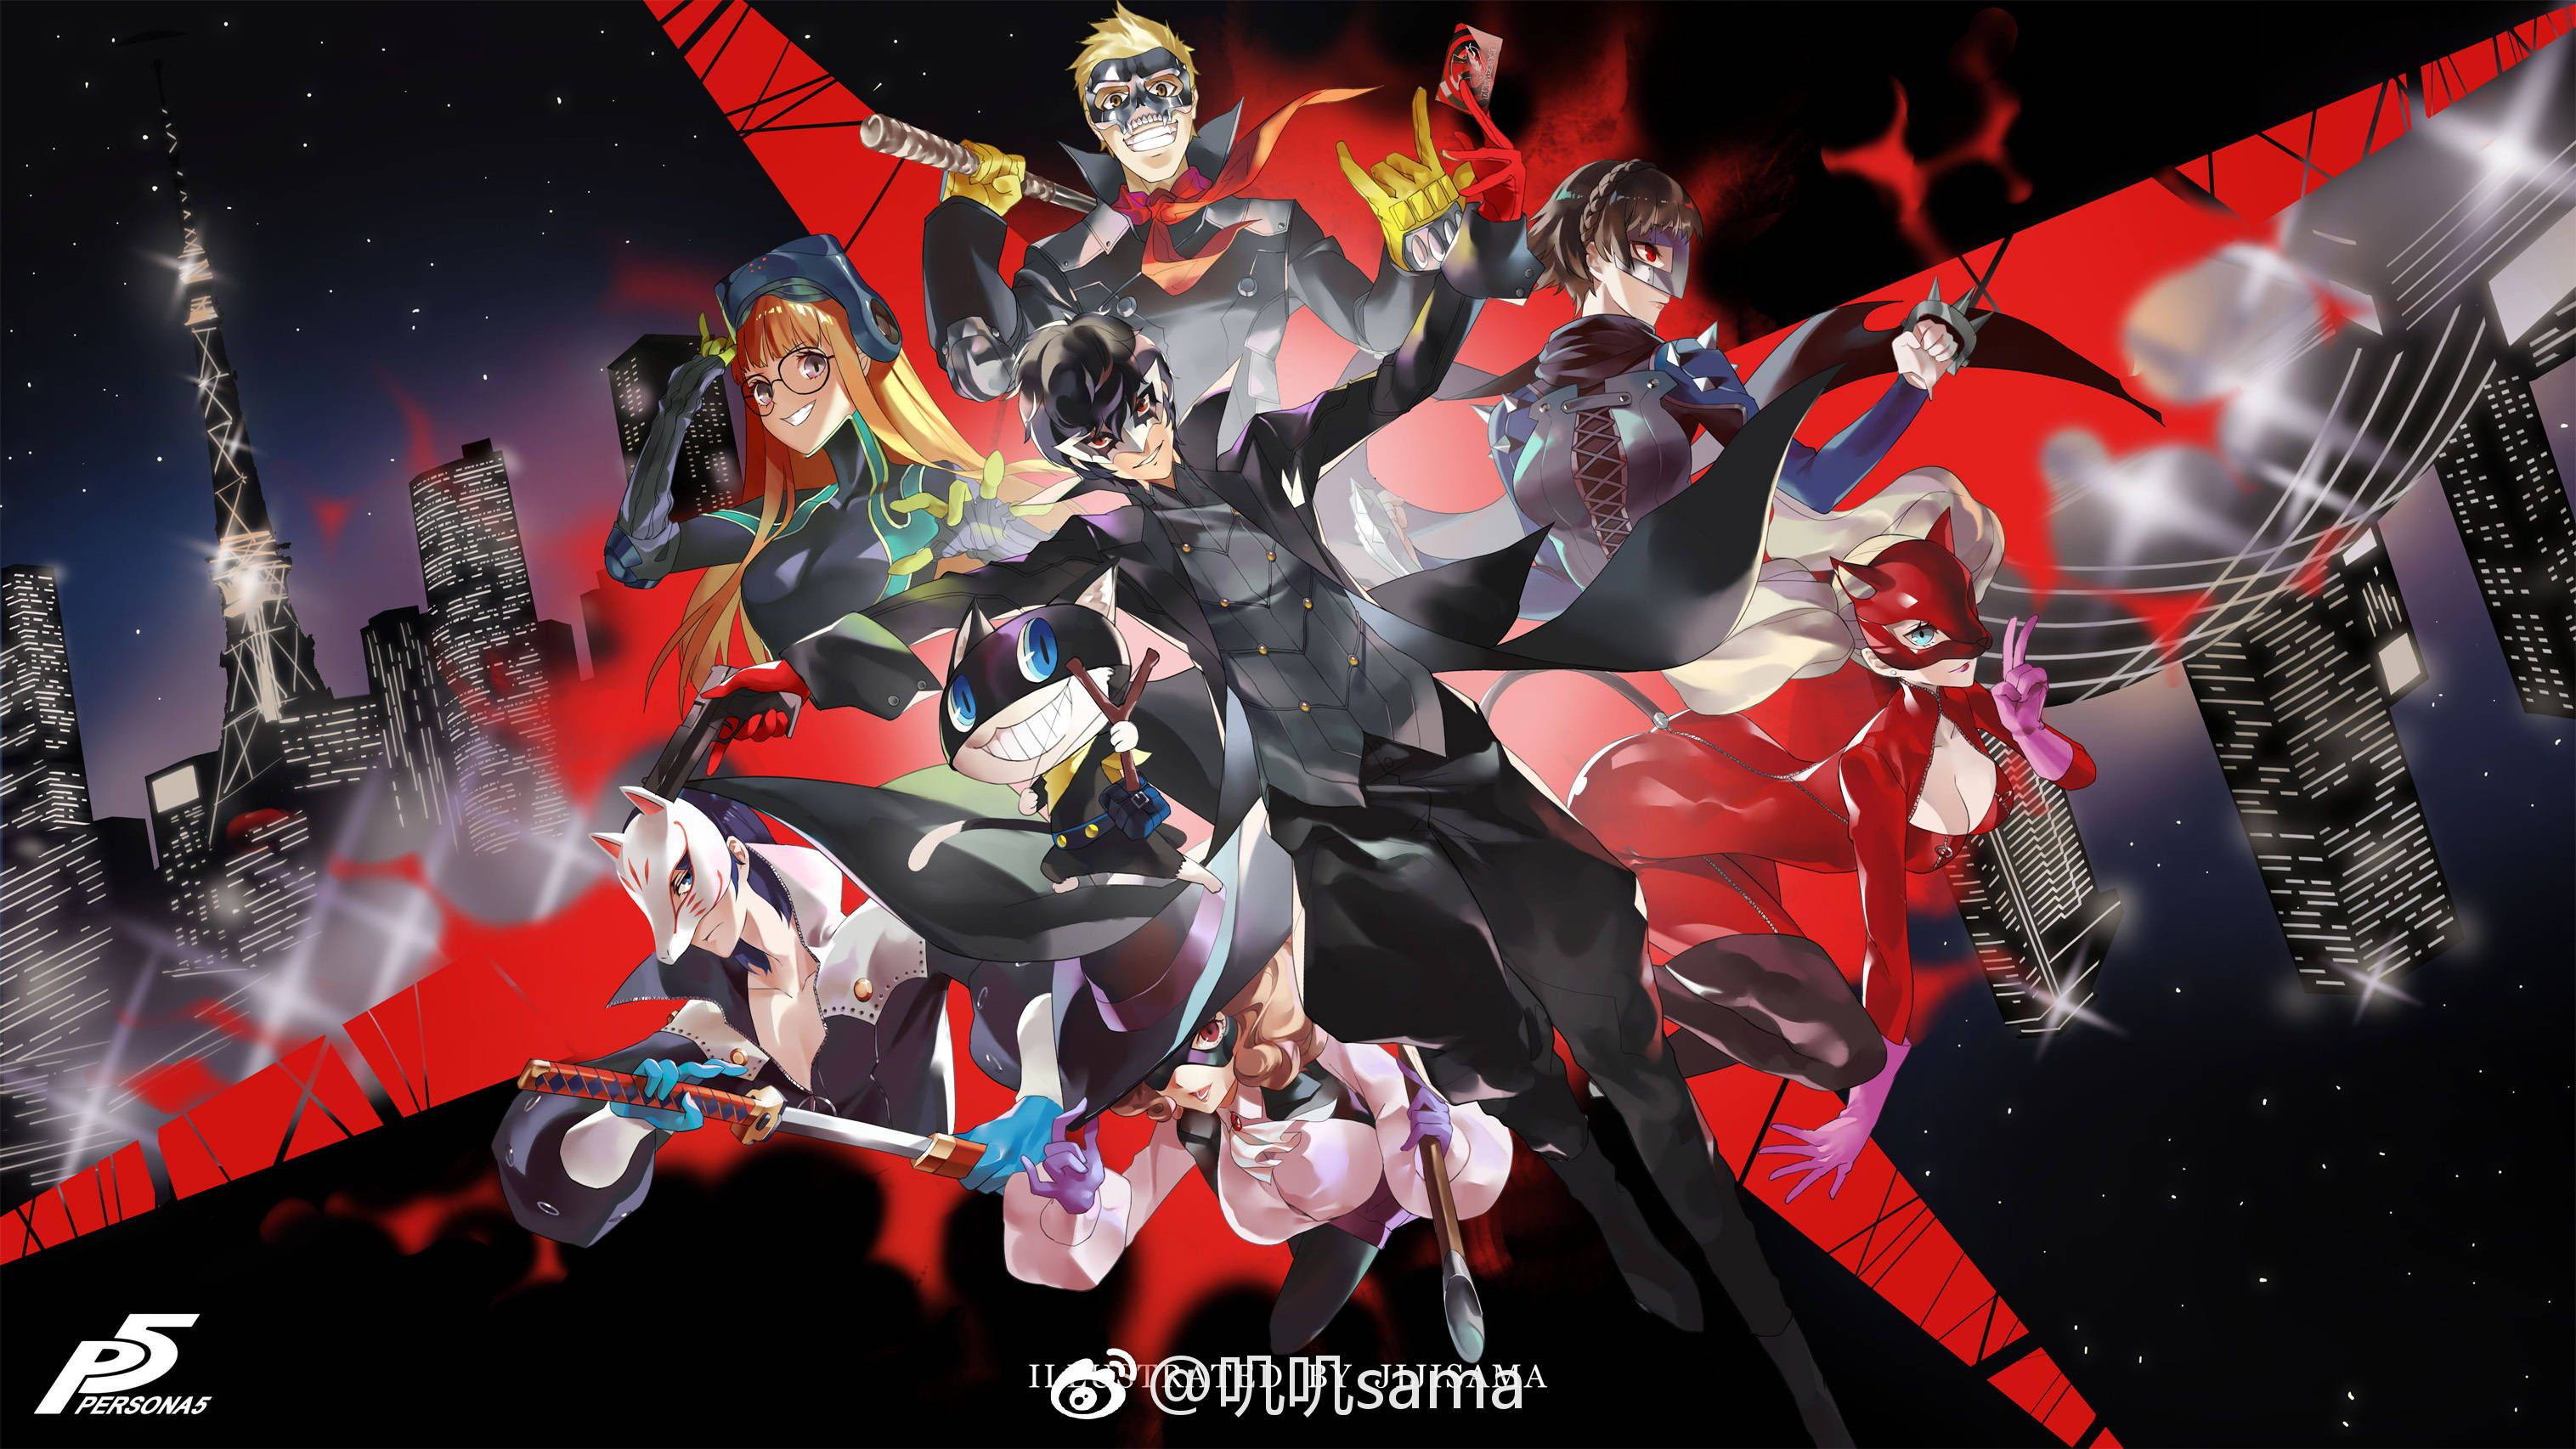 Pin By Oi Ling Wong On Z 2018女神異聞錄 Persona 5 Anime Persona